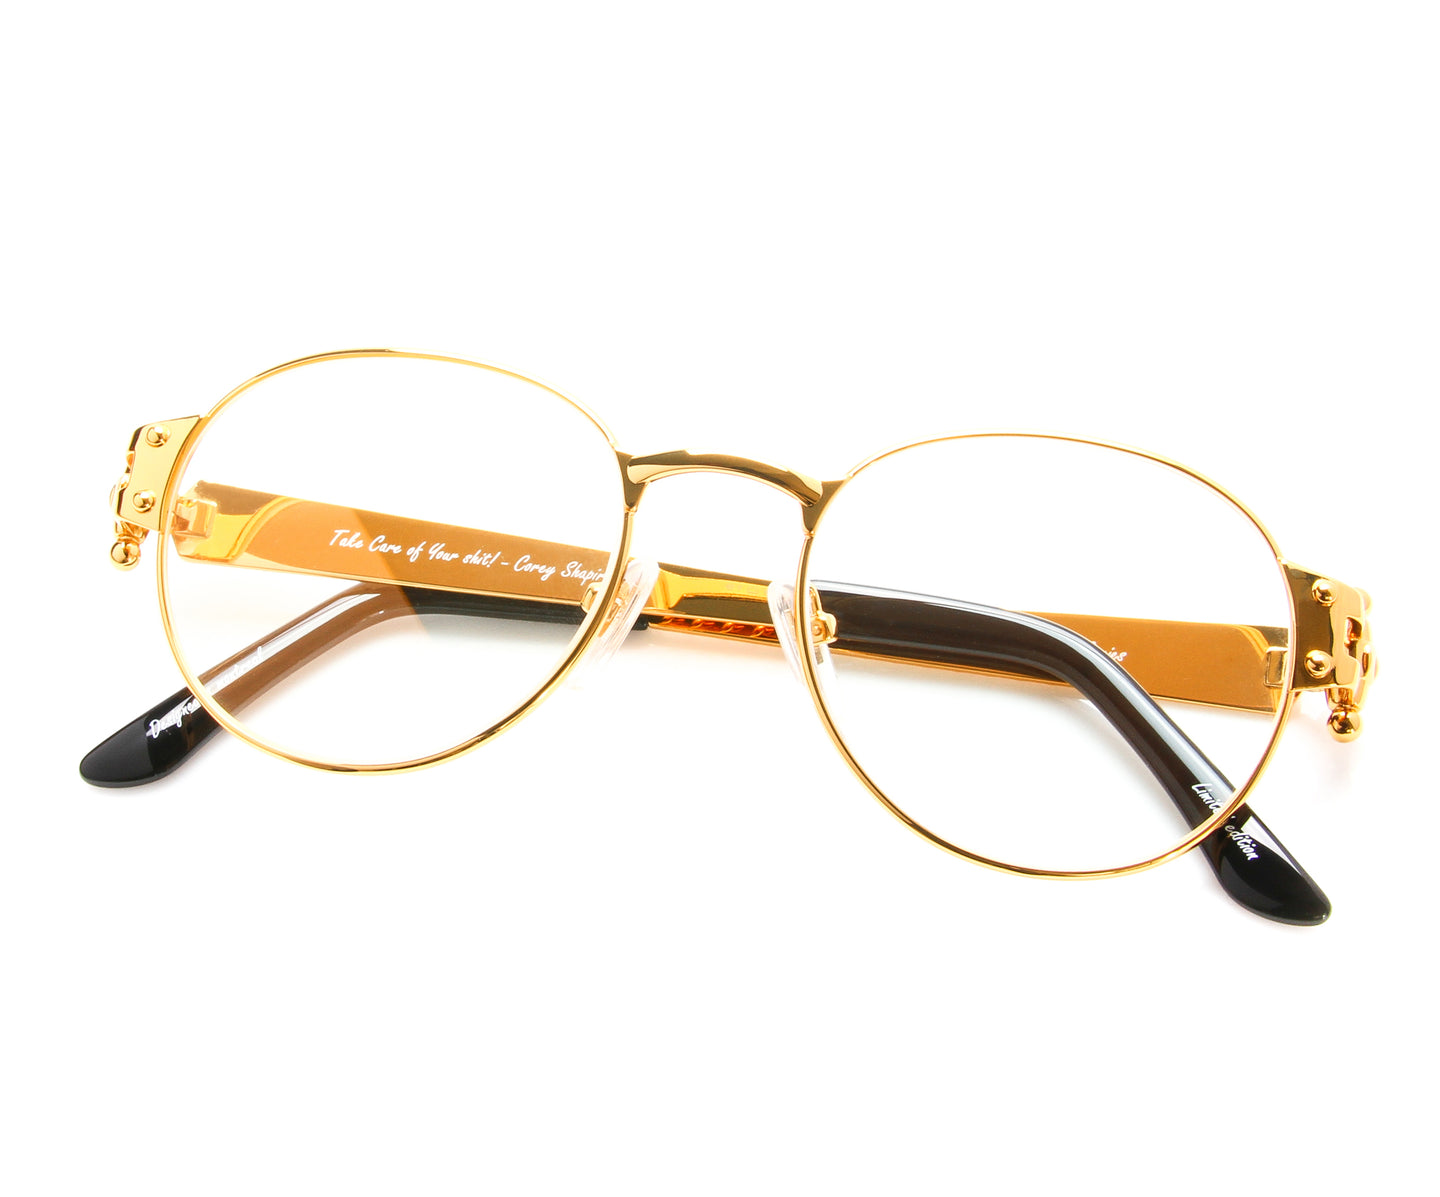 VF 1998 24KT Gold Masterpiece (Flash Gold), VF Masterpiece , glasses frames, eyeglasses online, eyeglass frames, mens glasses, womens glasses, buy glasses online, designer eyeglasses, vintage sunglasses, retro sunglasses, vintage glasses, sunglass, eyeglass, glasses, lens, vintage frames company, vf